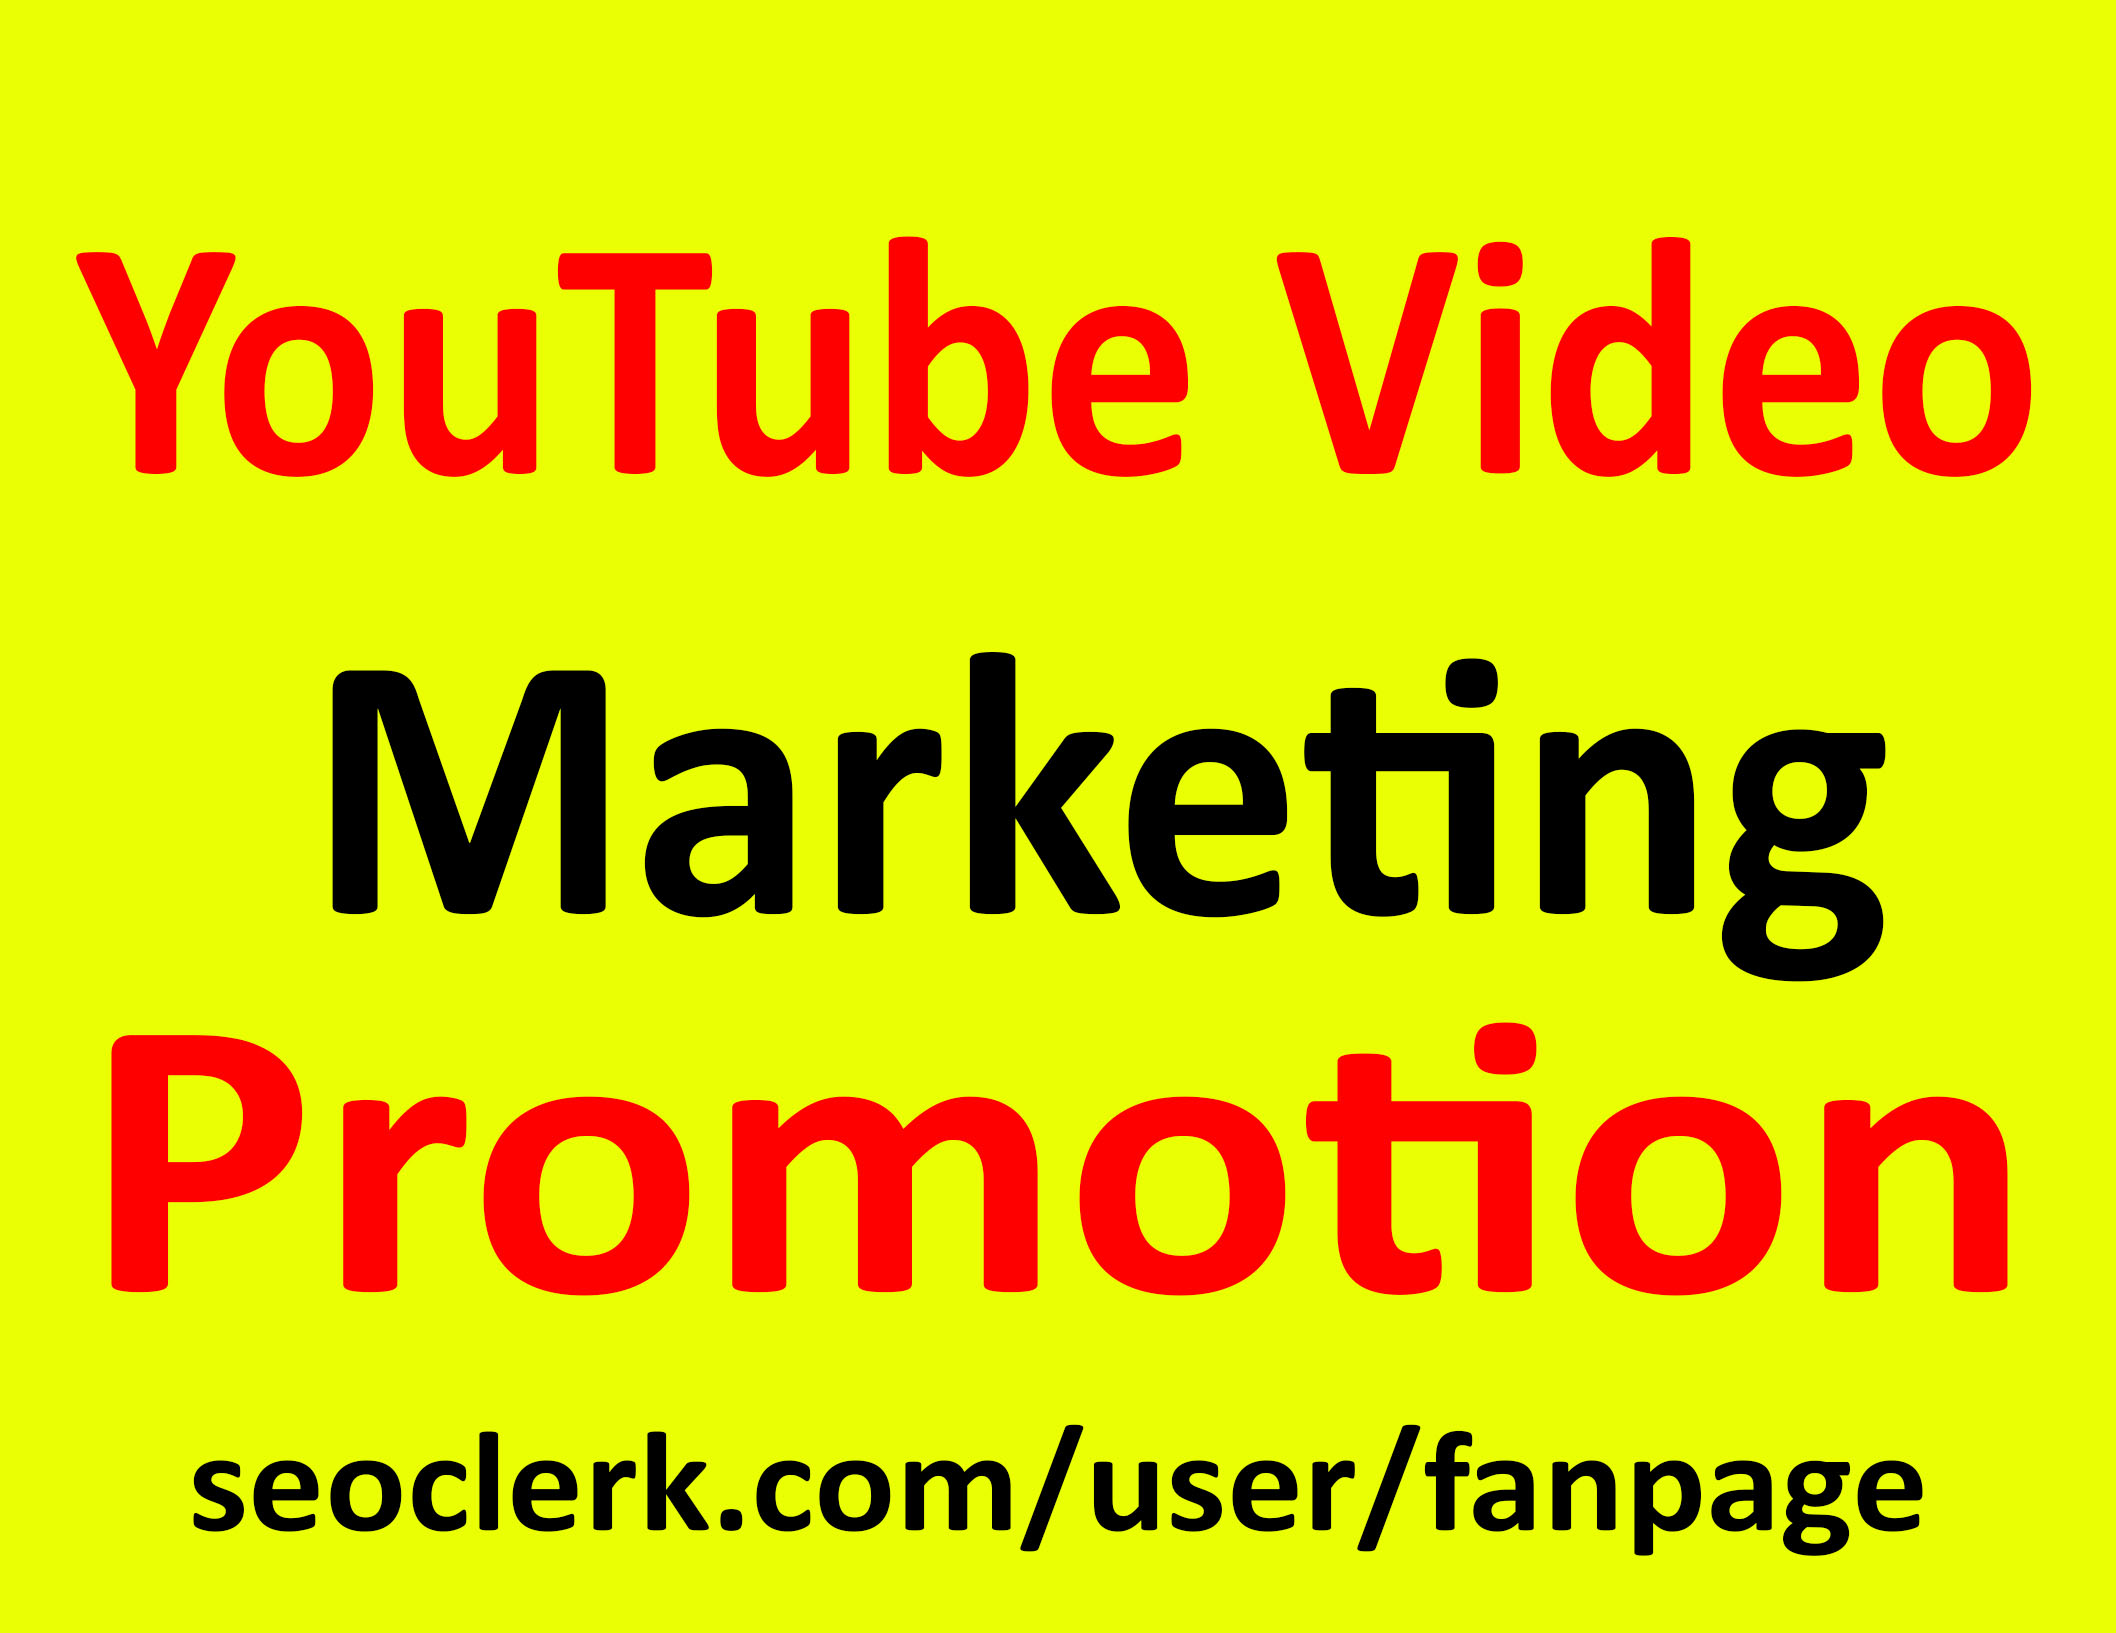 YouTube Video Promotion & Marketing Active Audien...